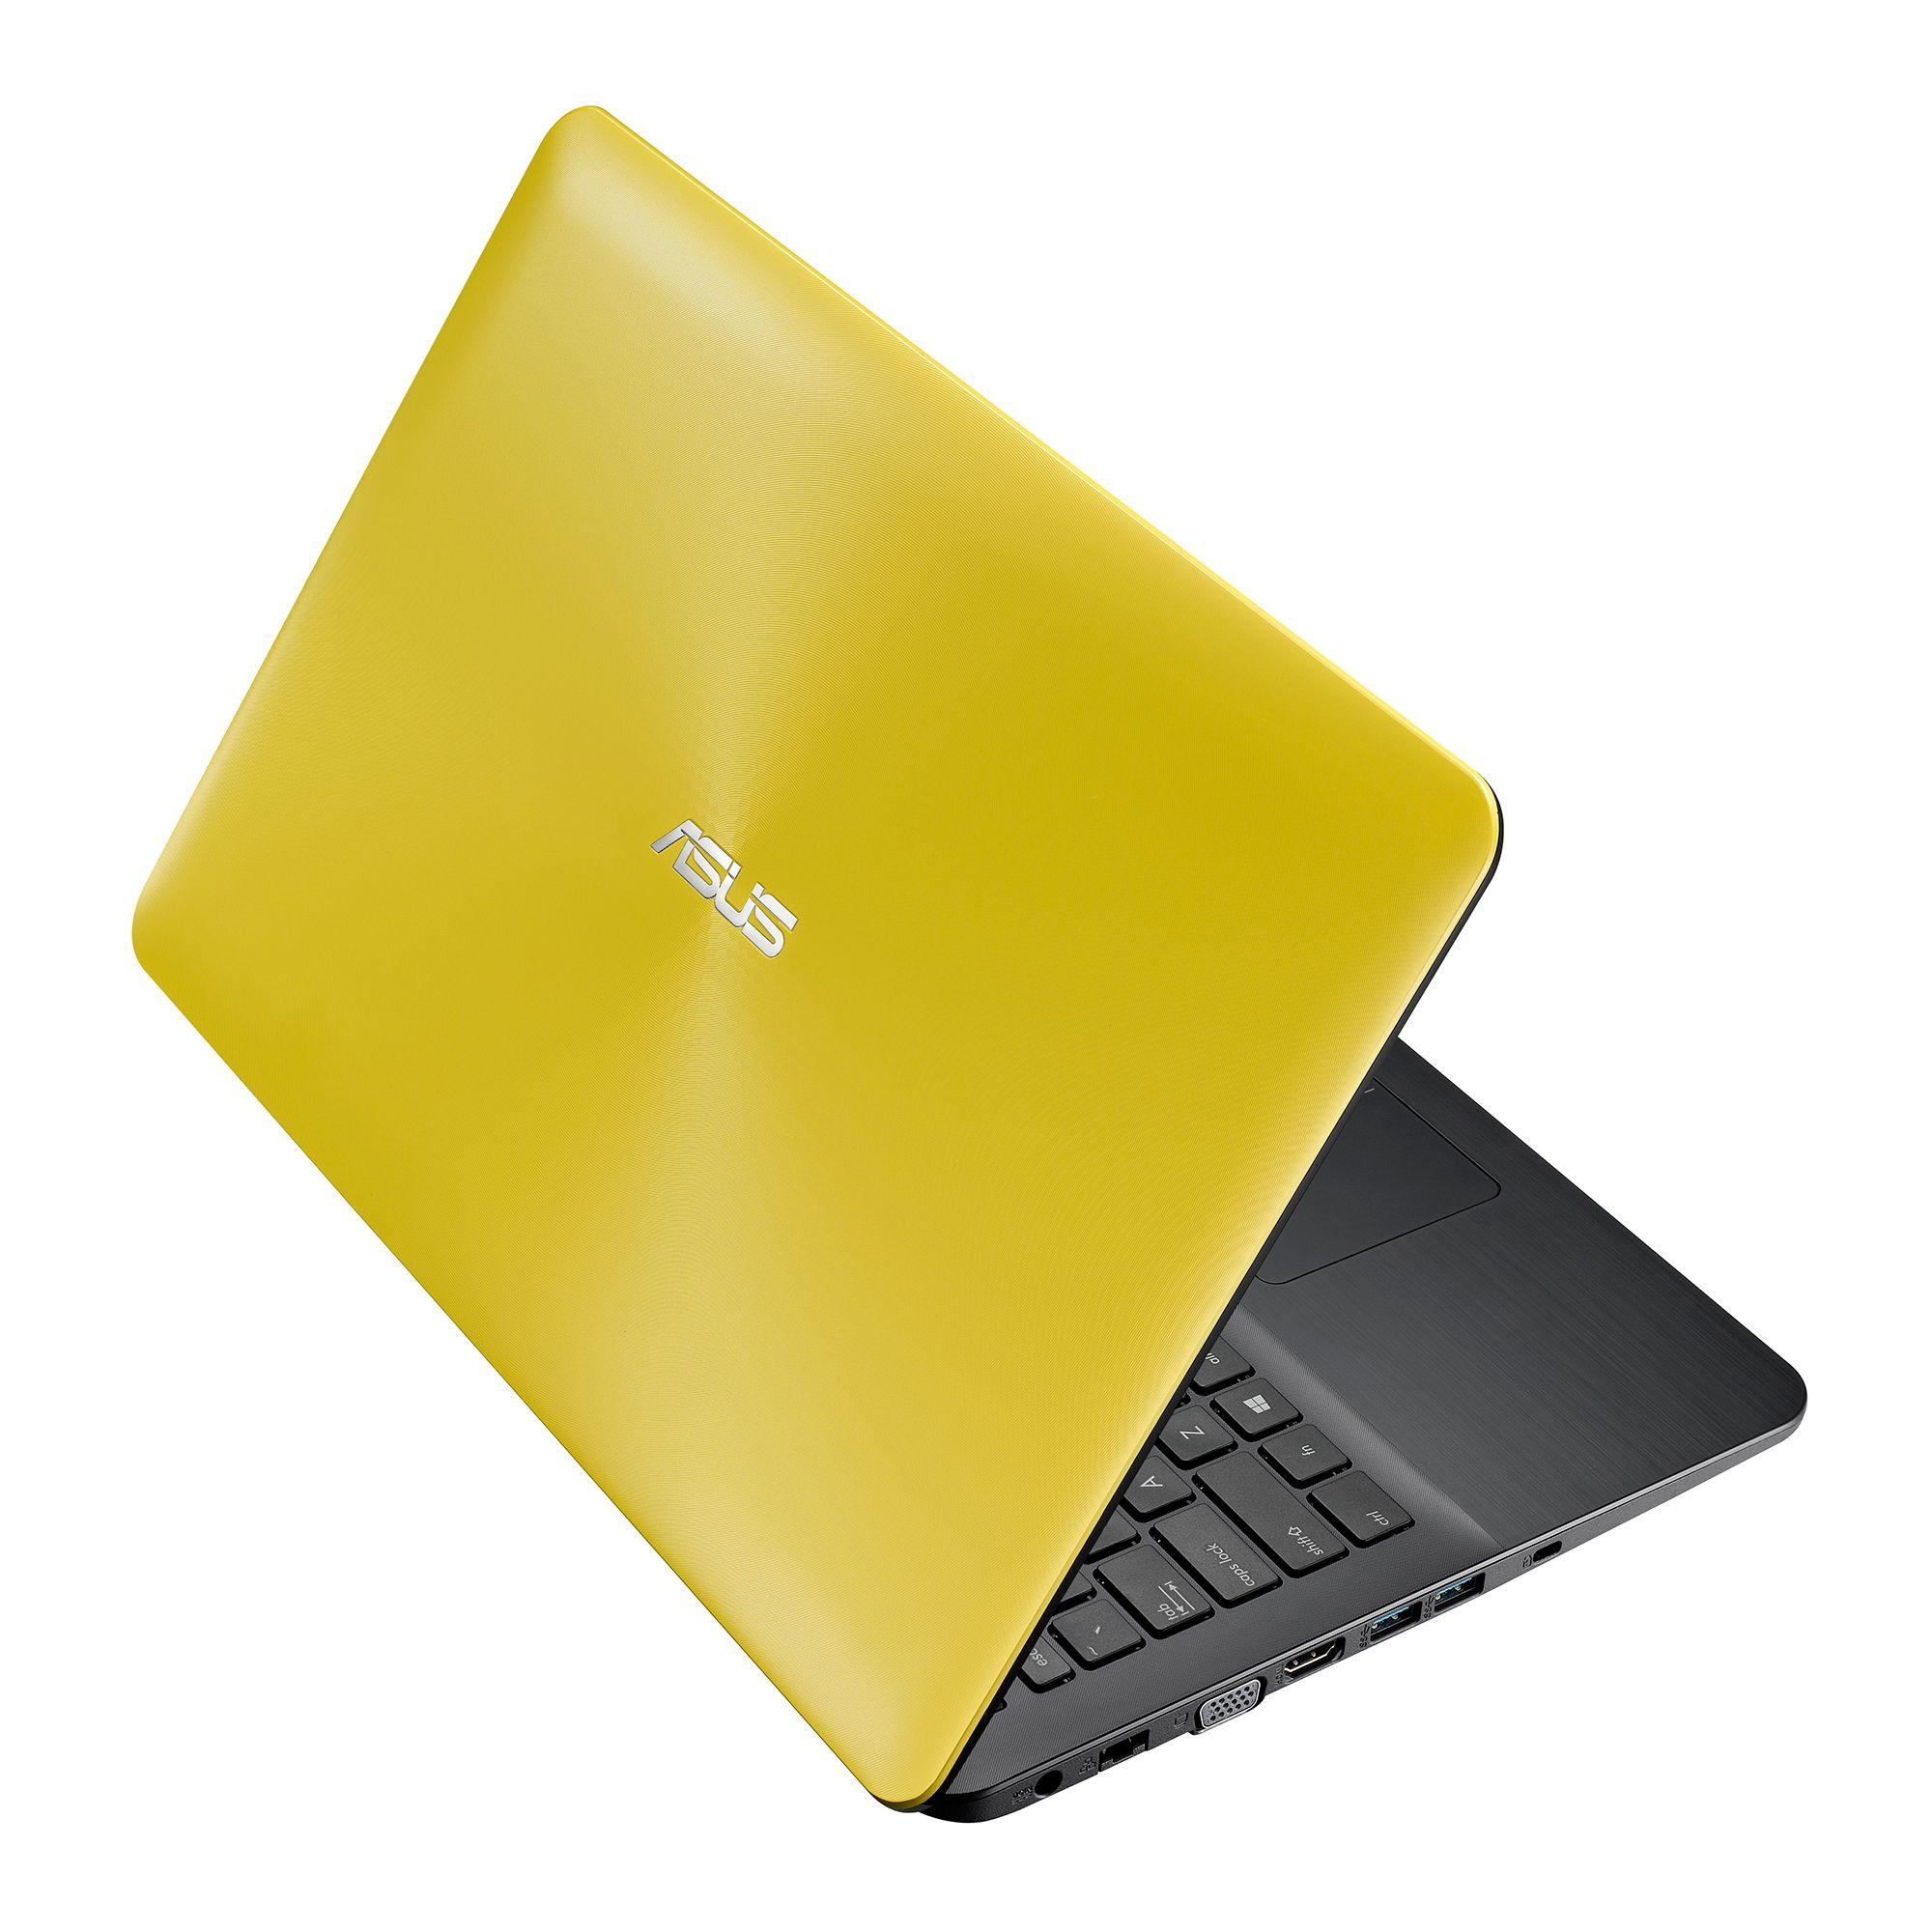 asus-laptop-x555ba-yellow